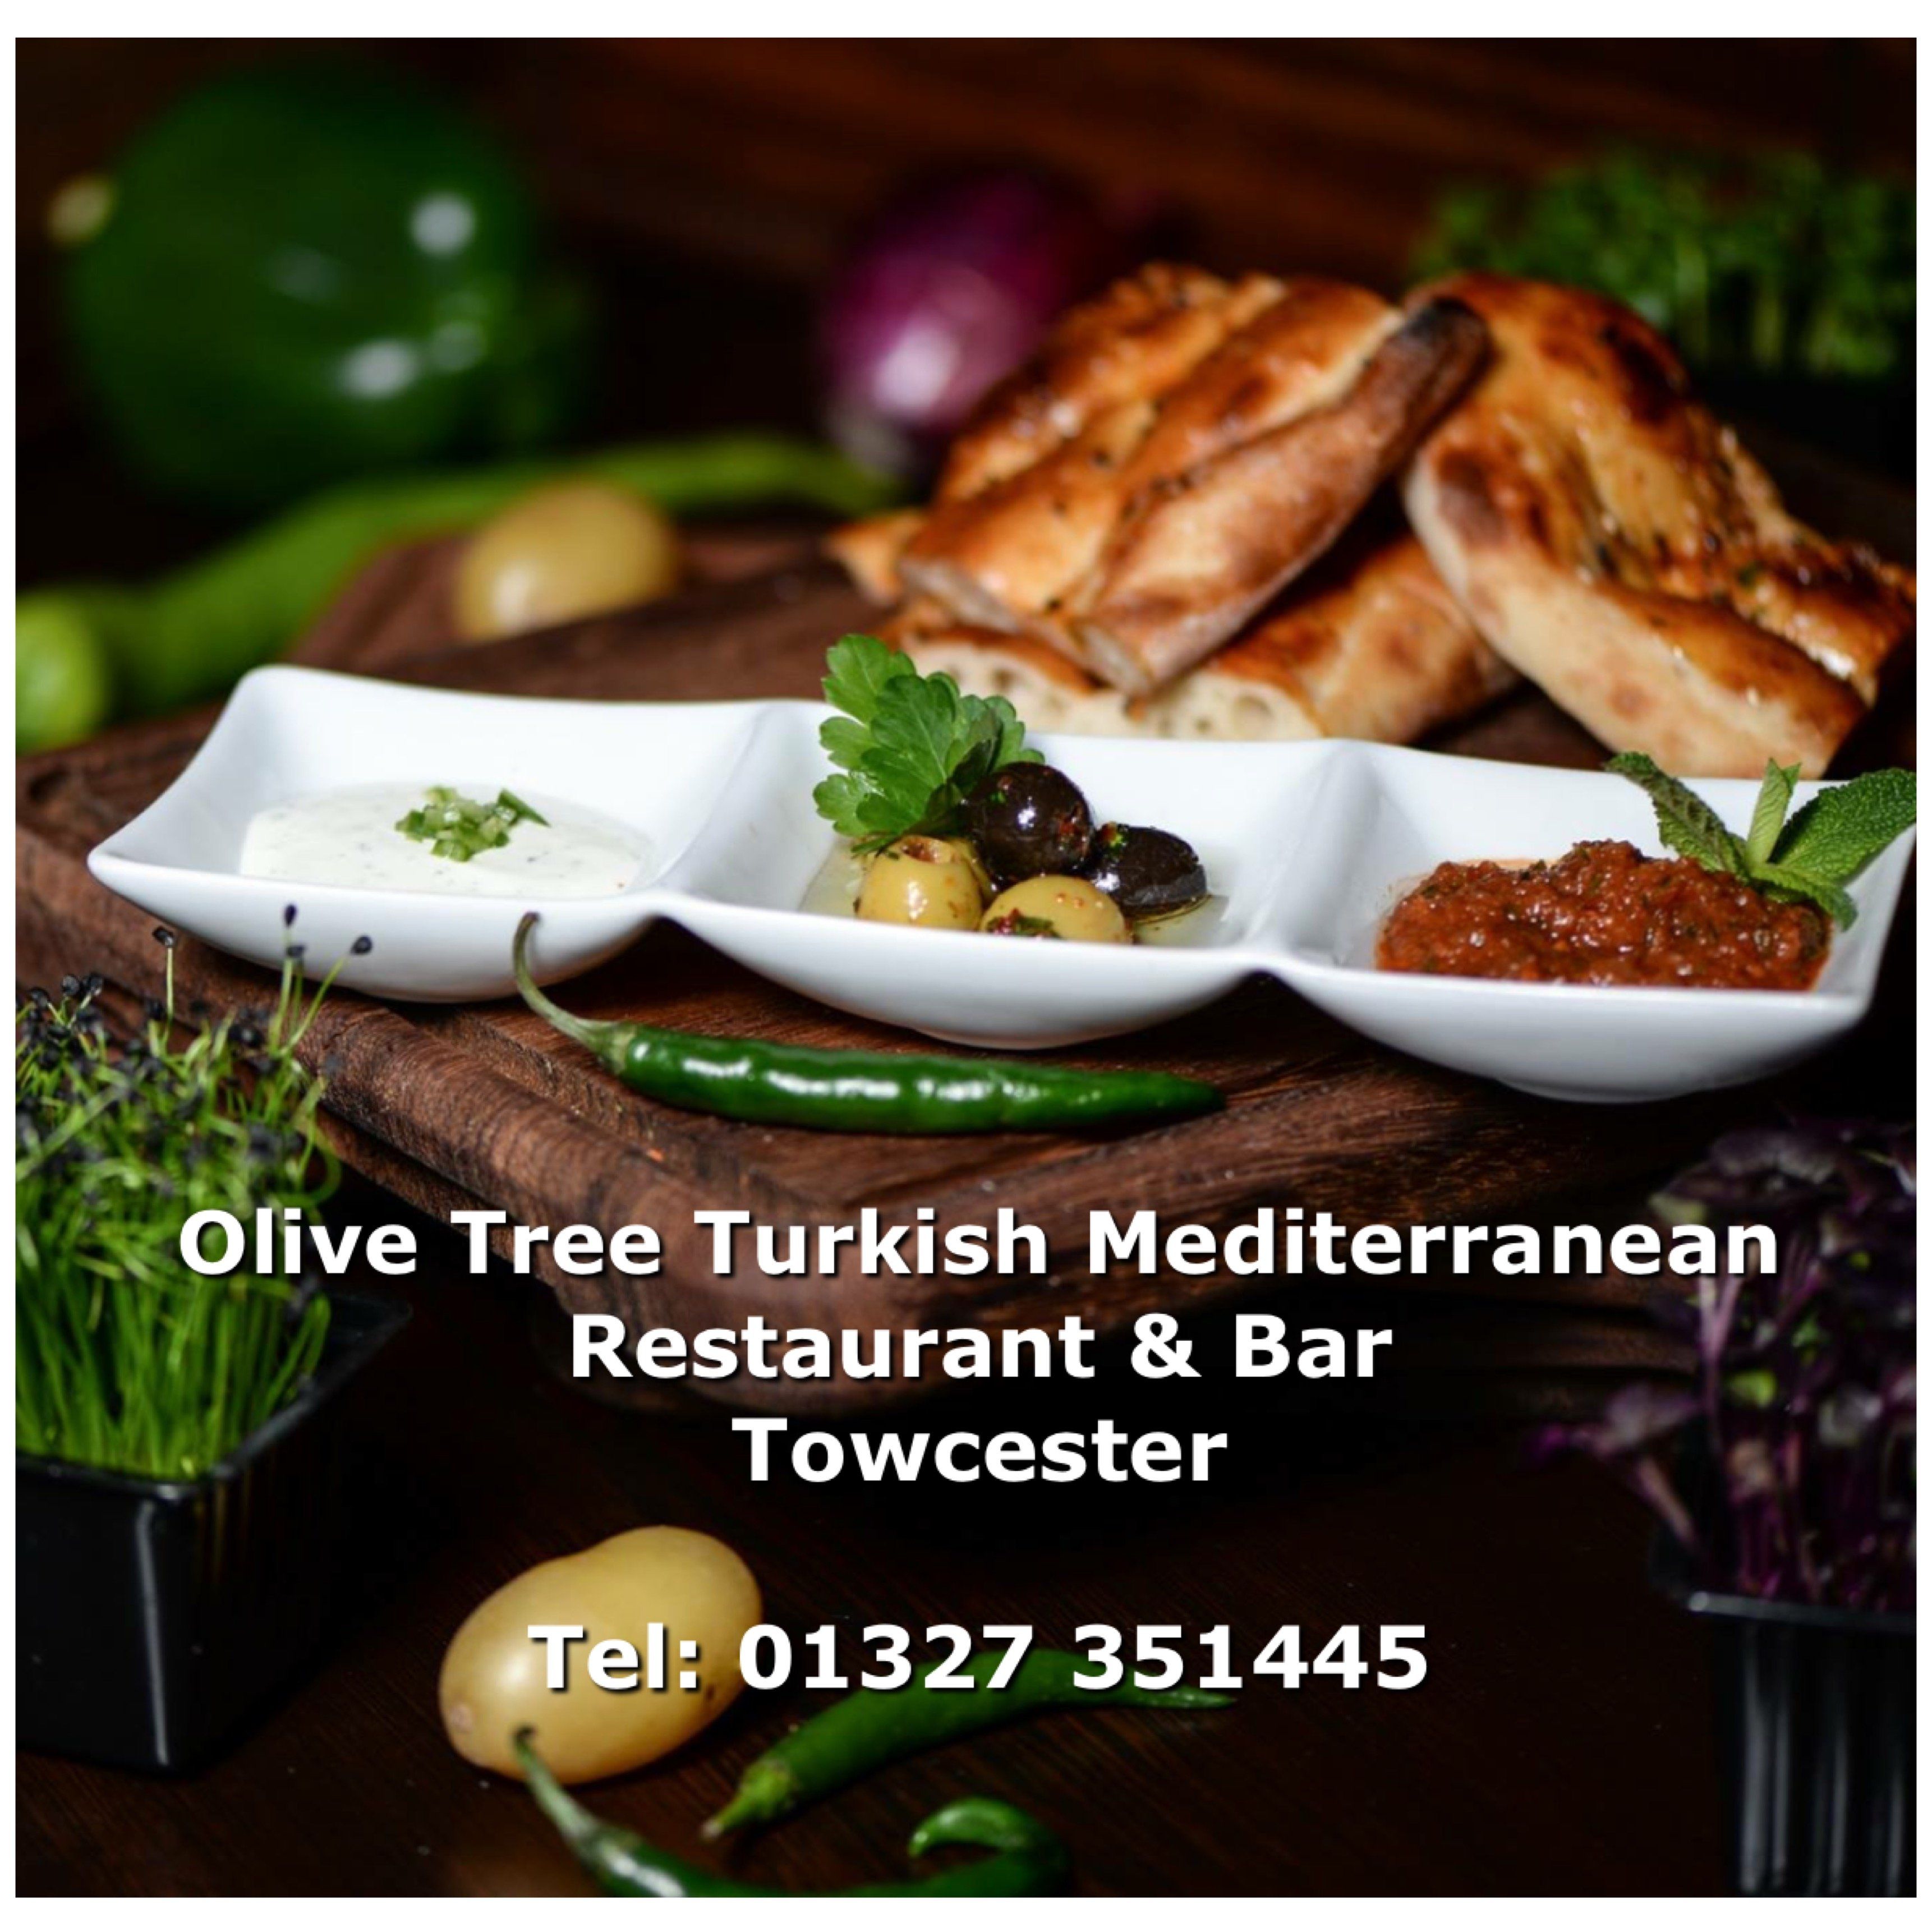 Things To Do in Turkish, Restaurants in Turkish